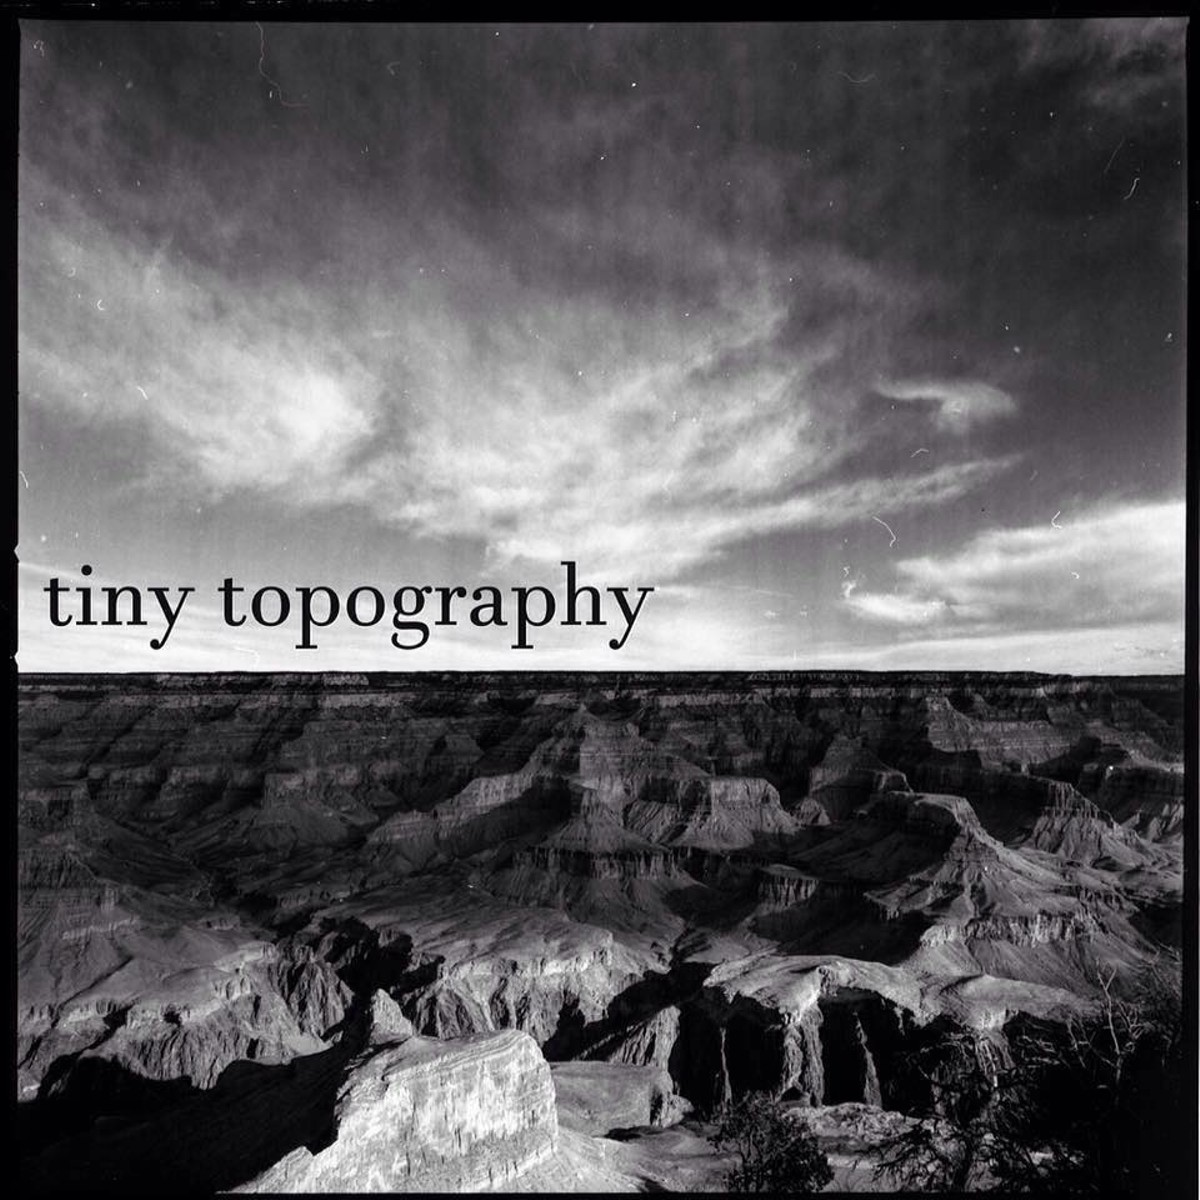 tiny_topography.jpg